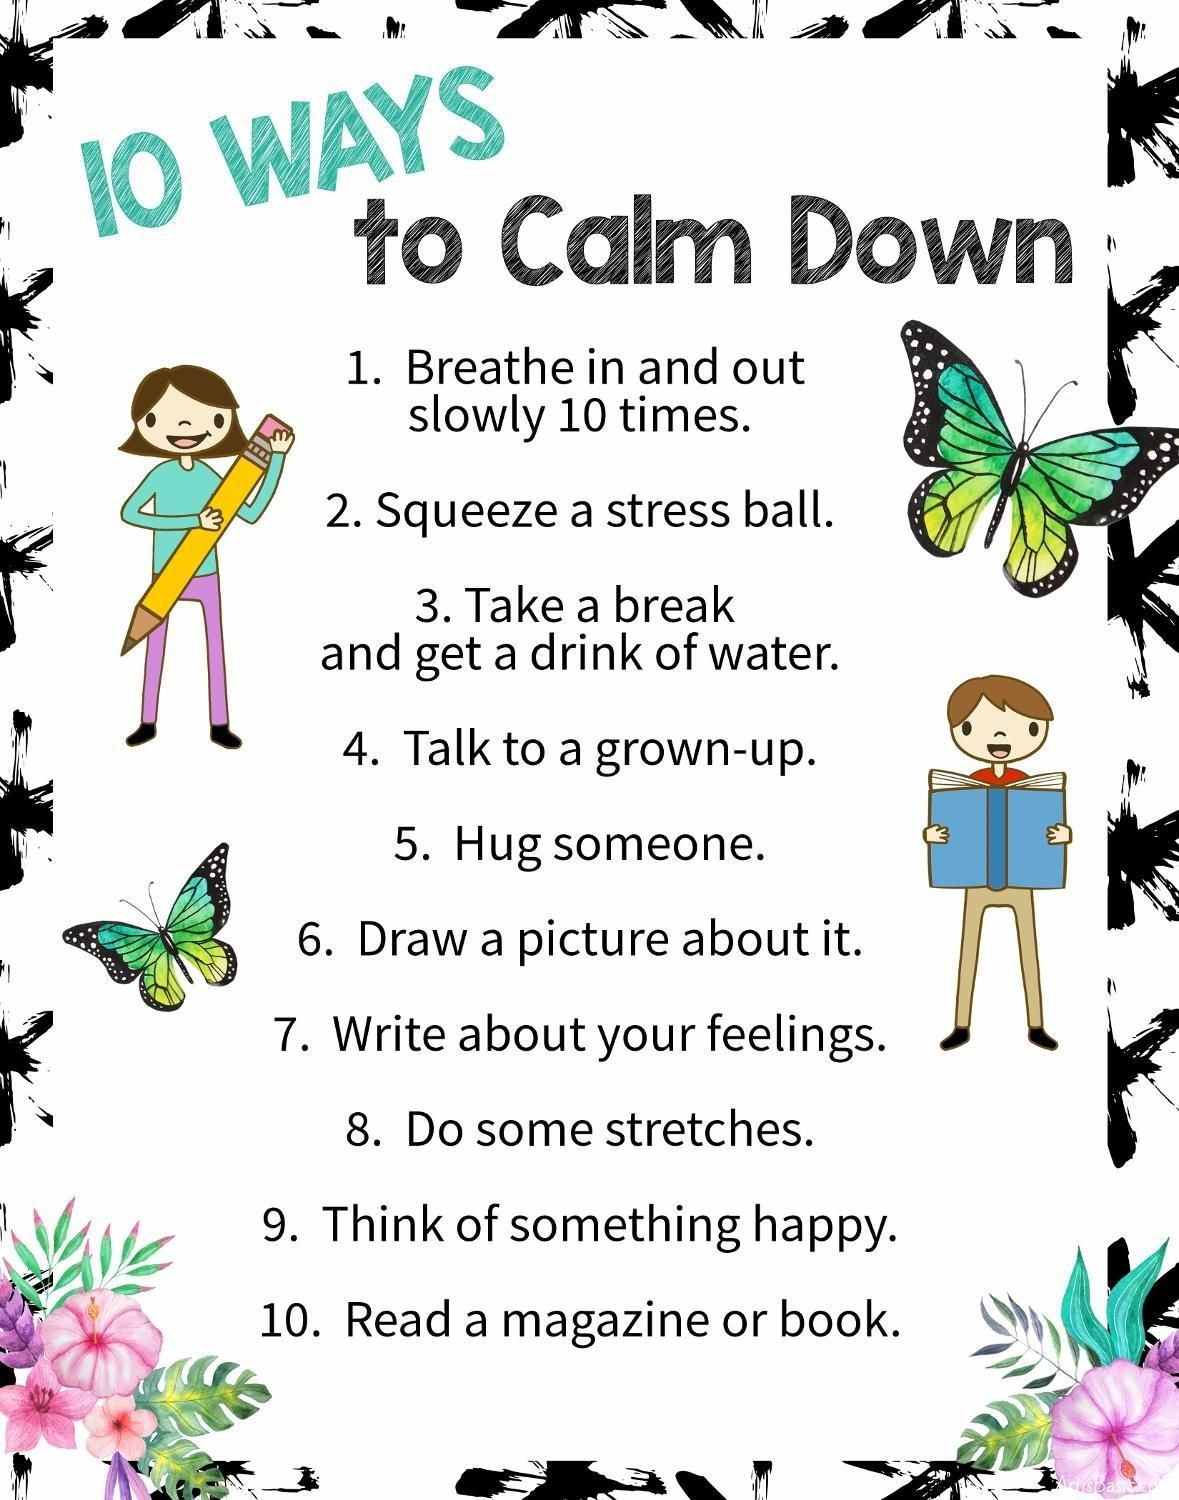 10 Ways To Calm Down: A Free Printable Poster | Art | Free Poster - Free Printable Educational Posters